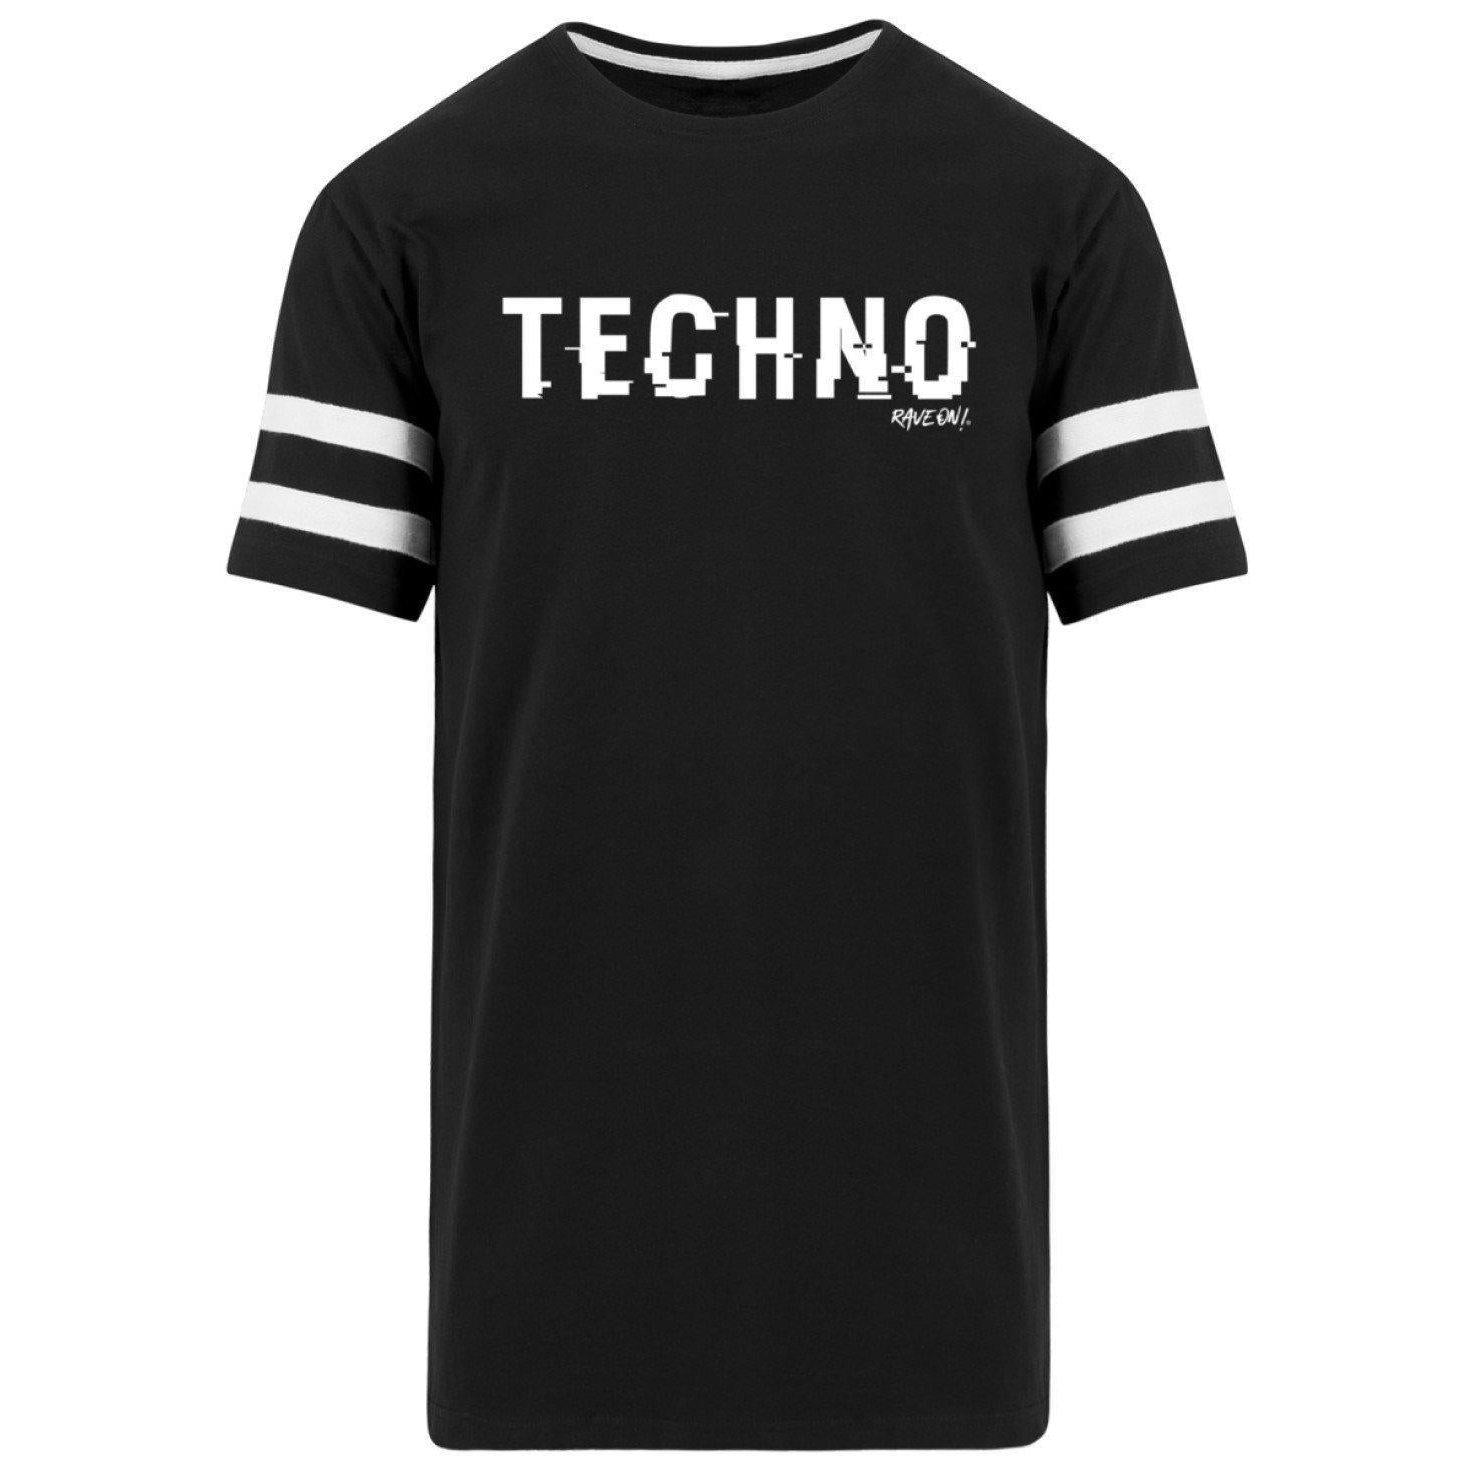 TECHNO shifted Rave On!® - Herren Striped Long Shirt Striped Long Shirt Schwarz / S - Rave On!® der Club & Techno Szene Shop für Coole Junge Mode Streetwear Style & Fashion Outfits + Sexy Festival 420 Stuff